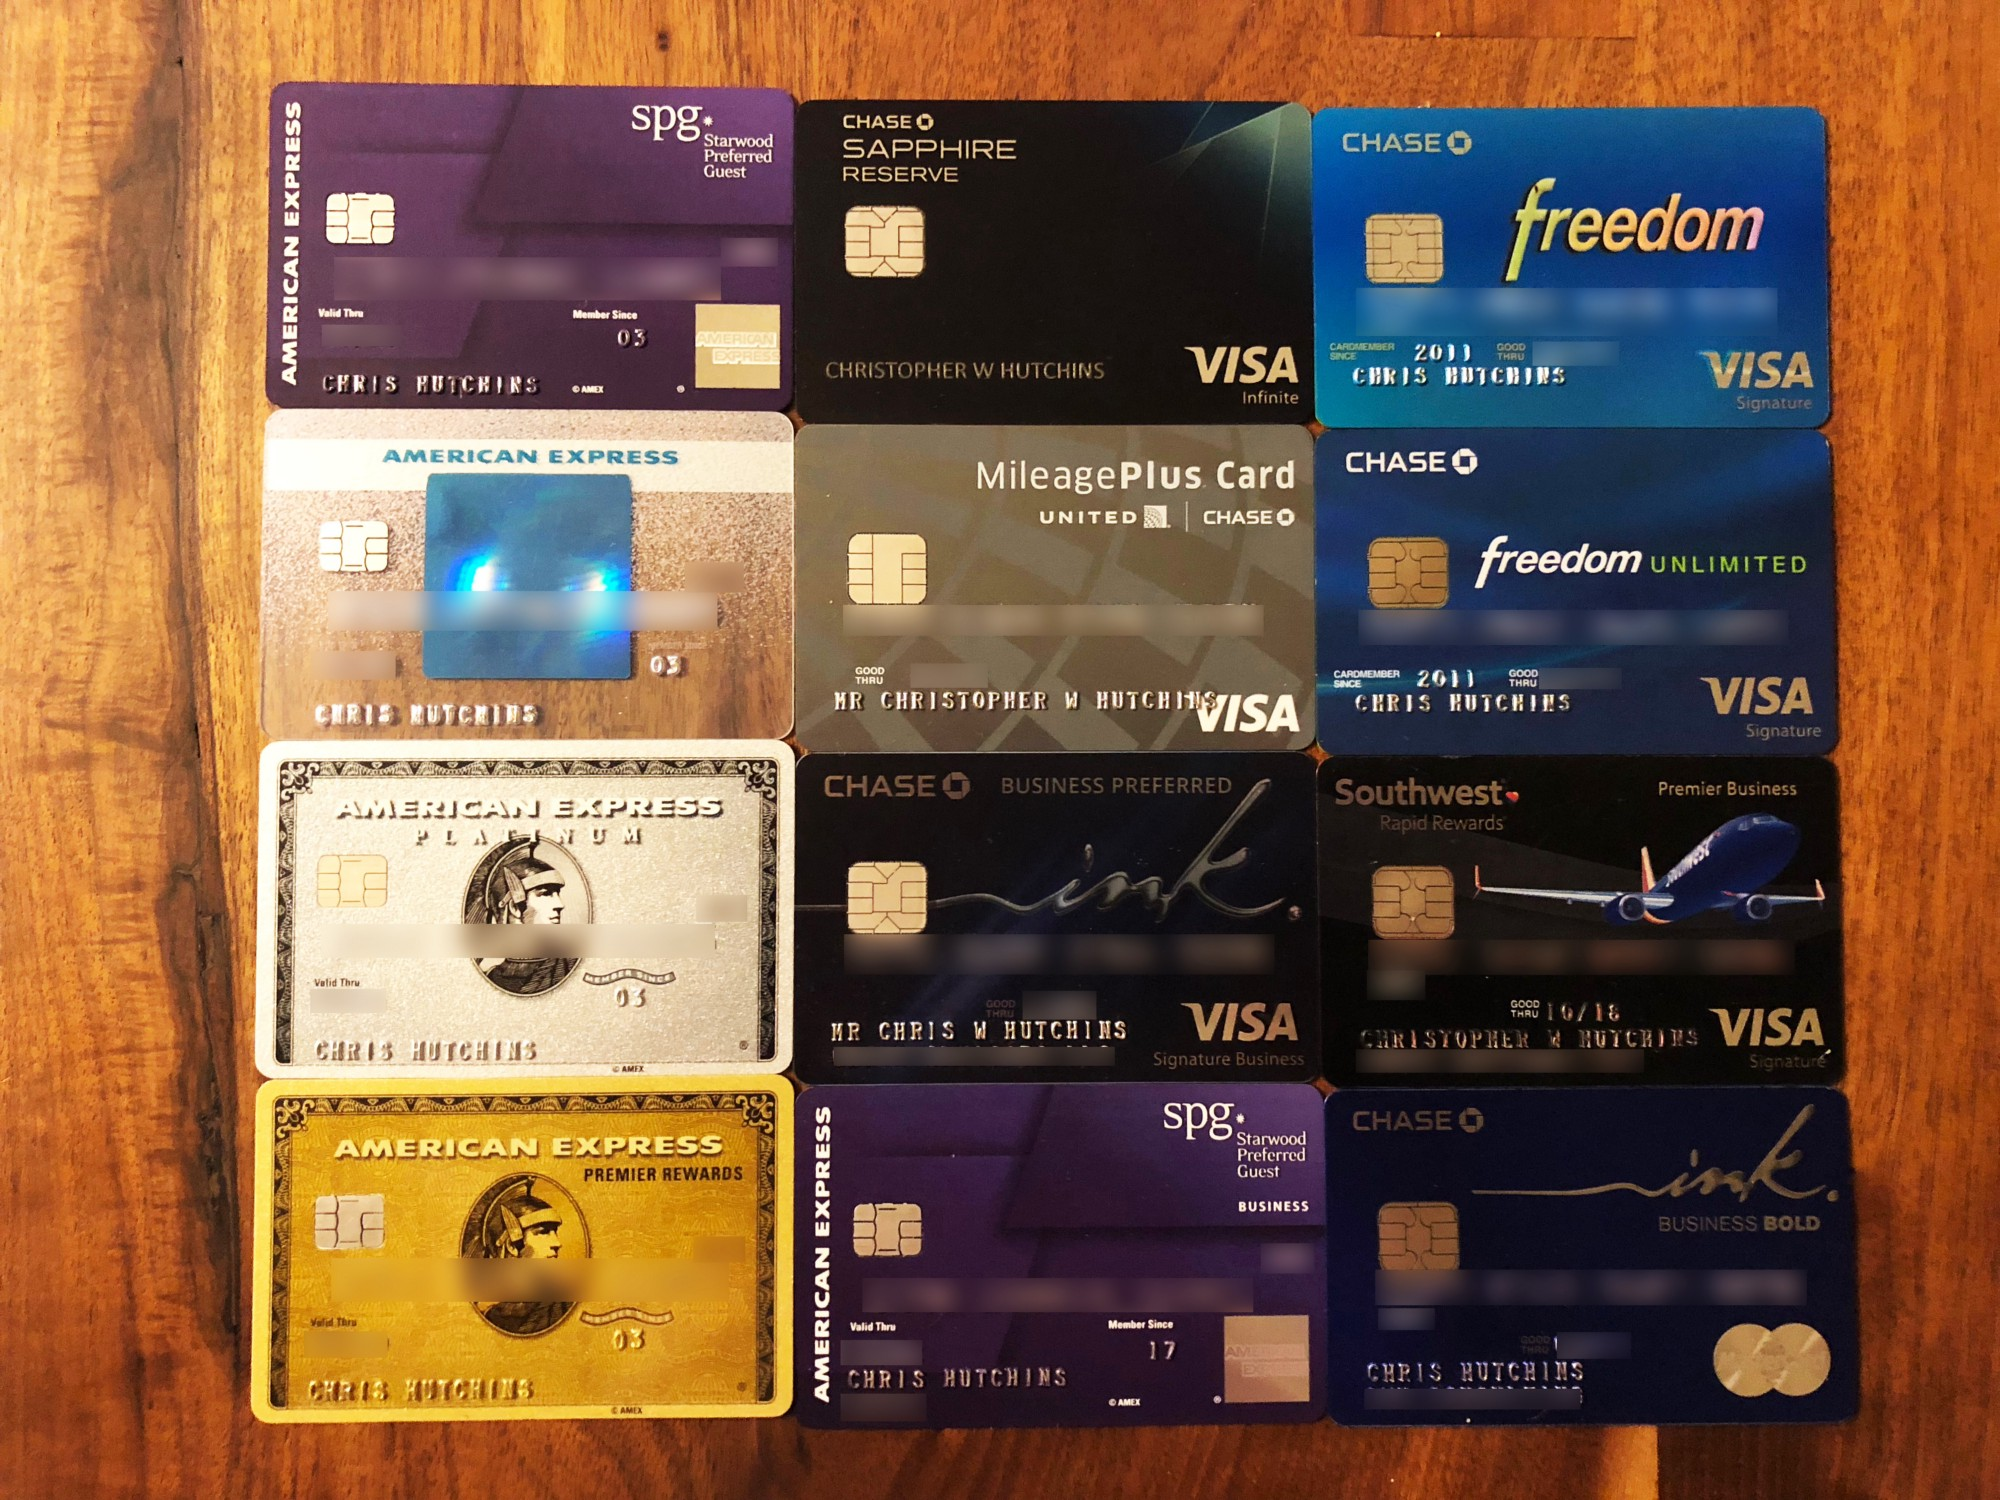 What Credit Card Should Be In Your Wallet? – Chris Hutchins